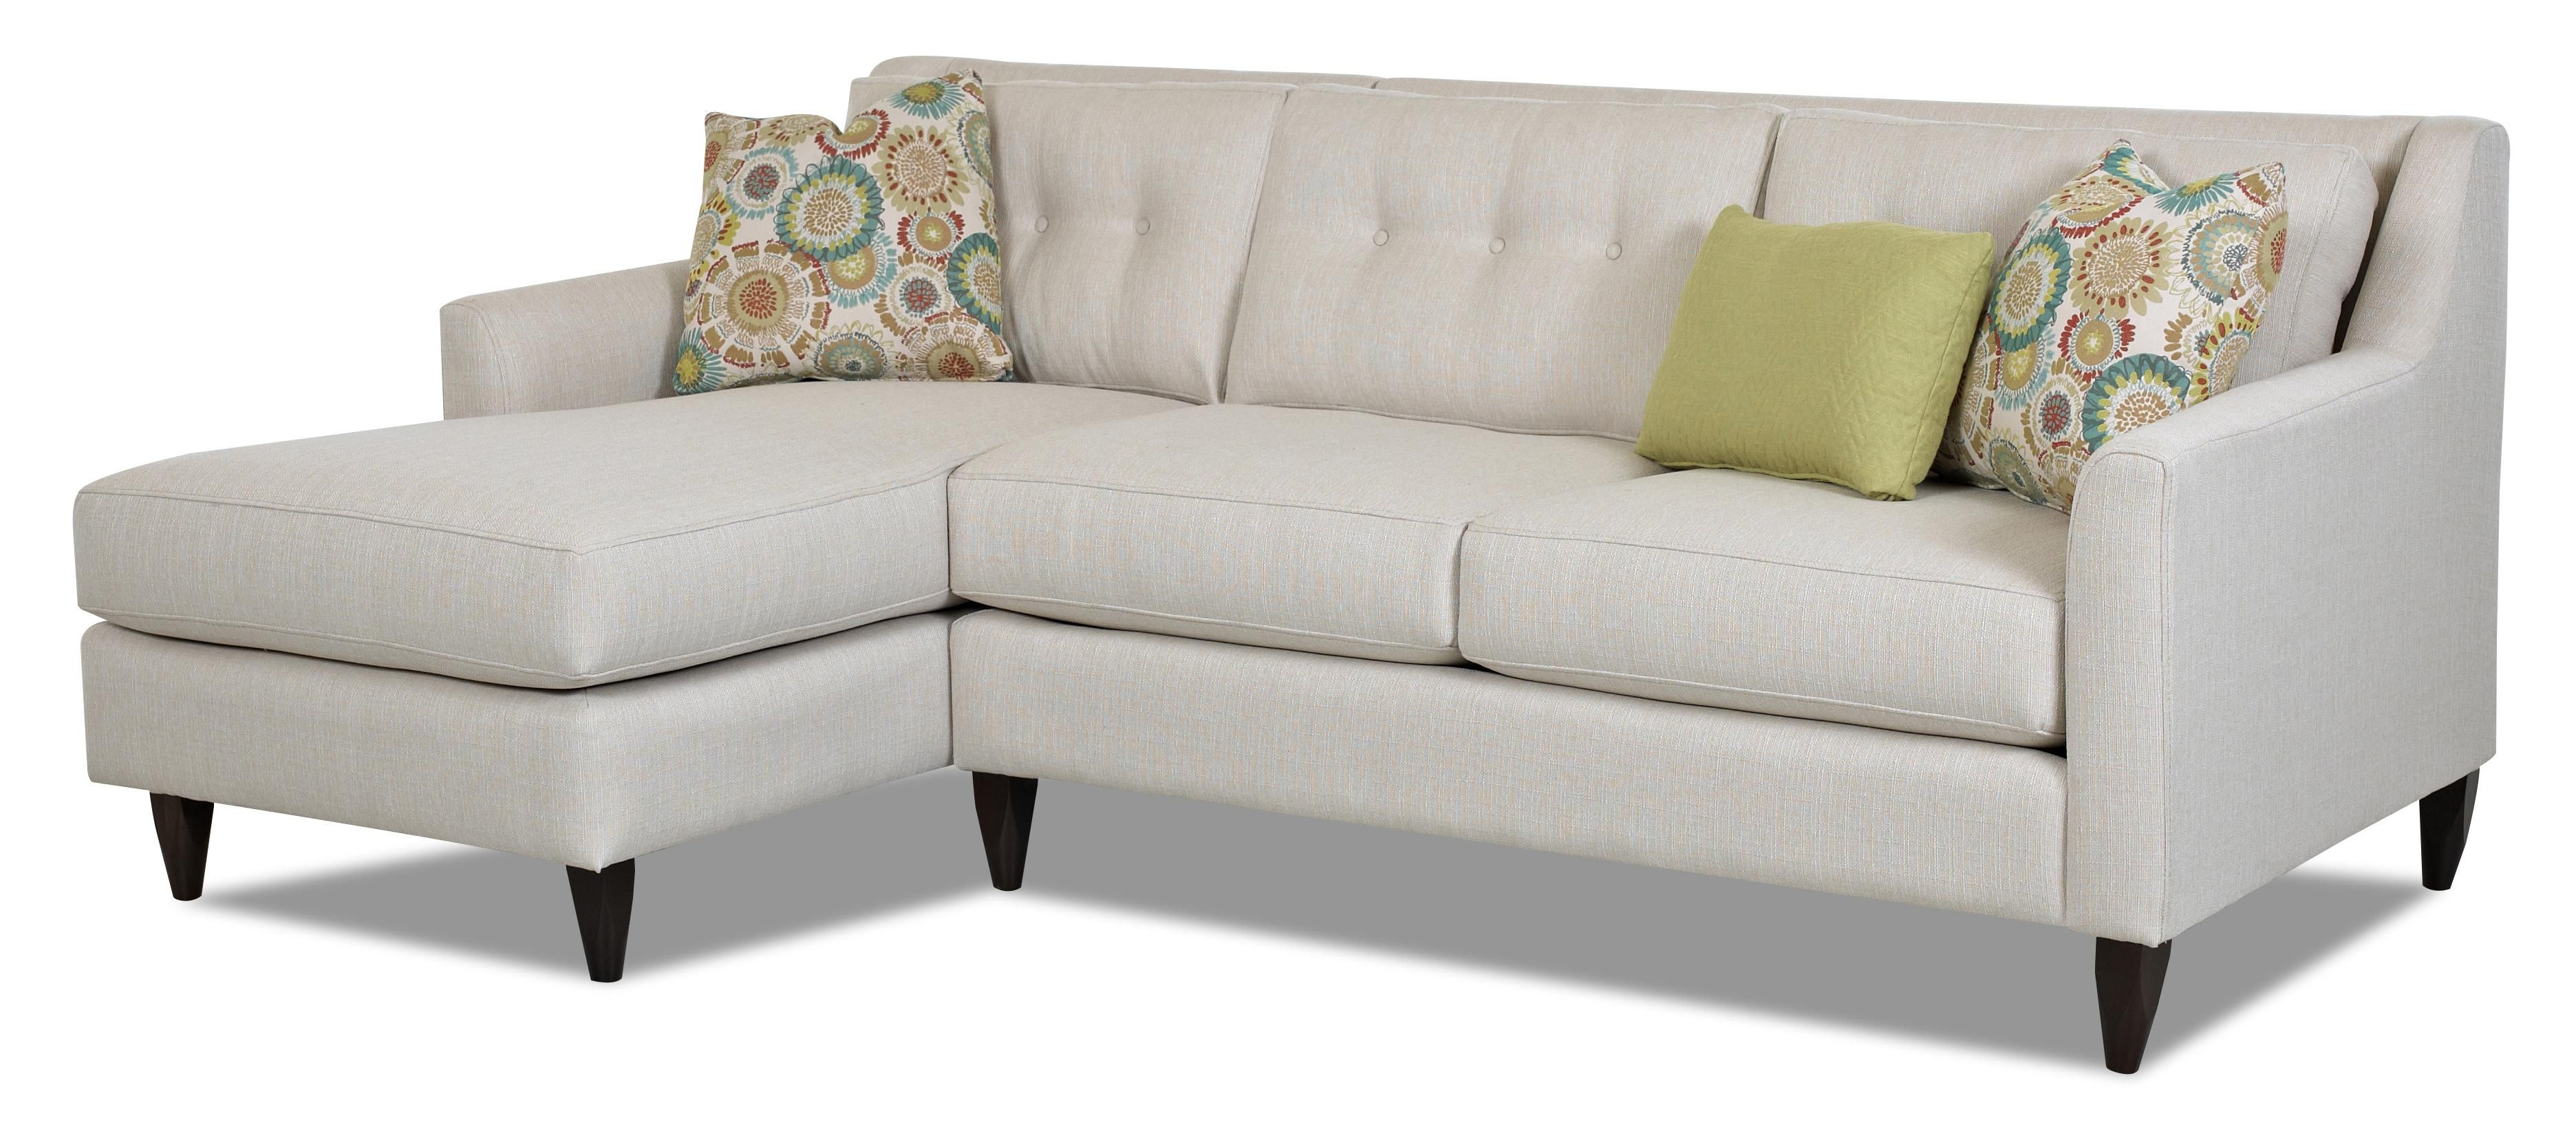 Chazy Contemporary 2 Piece Sectional Sofa by Klaussner